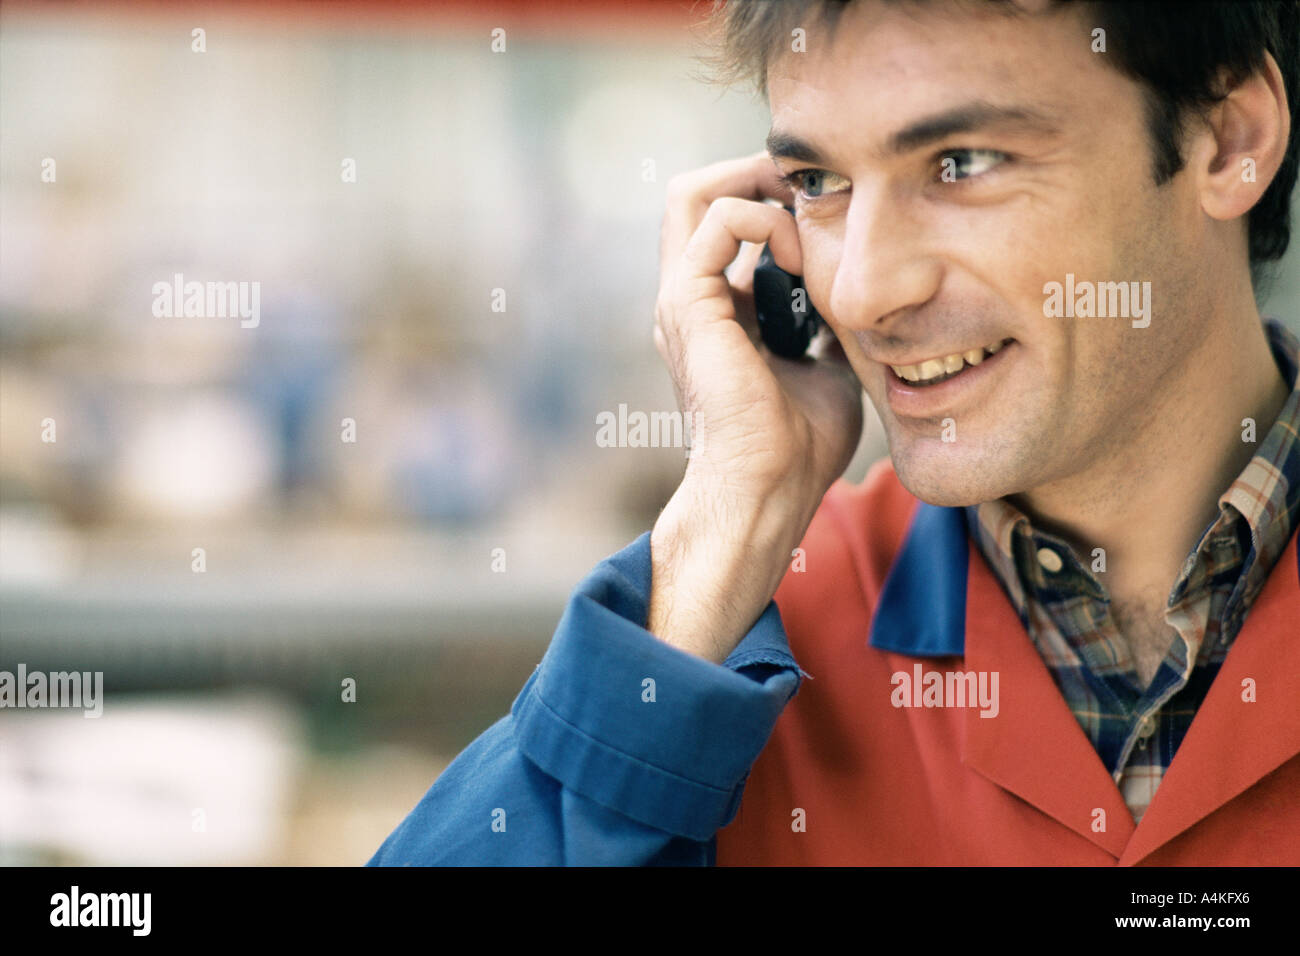 Manual worker using cell phone - Stock Image